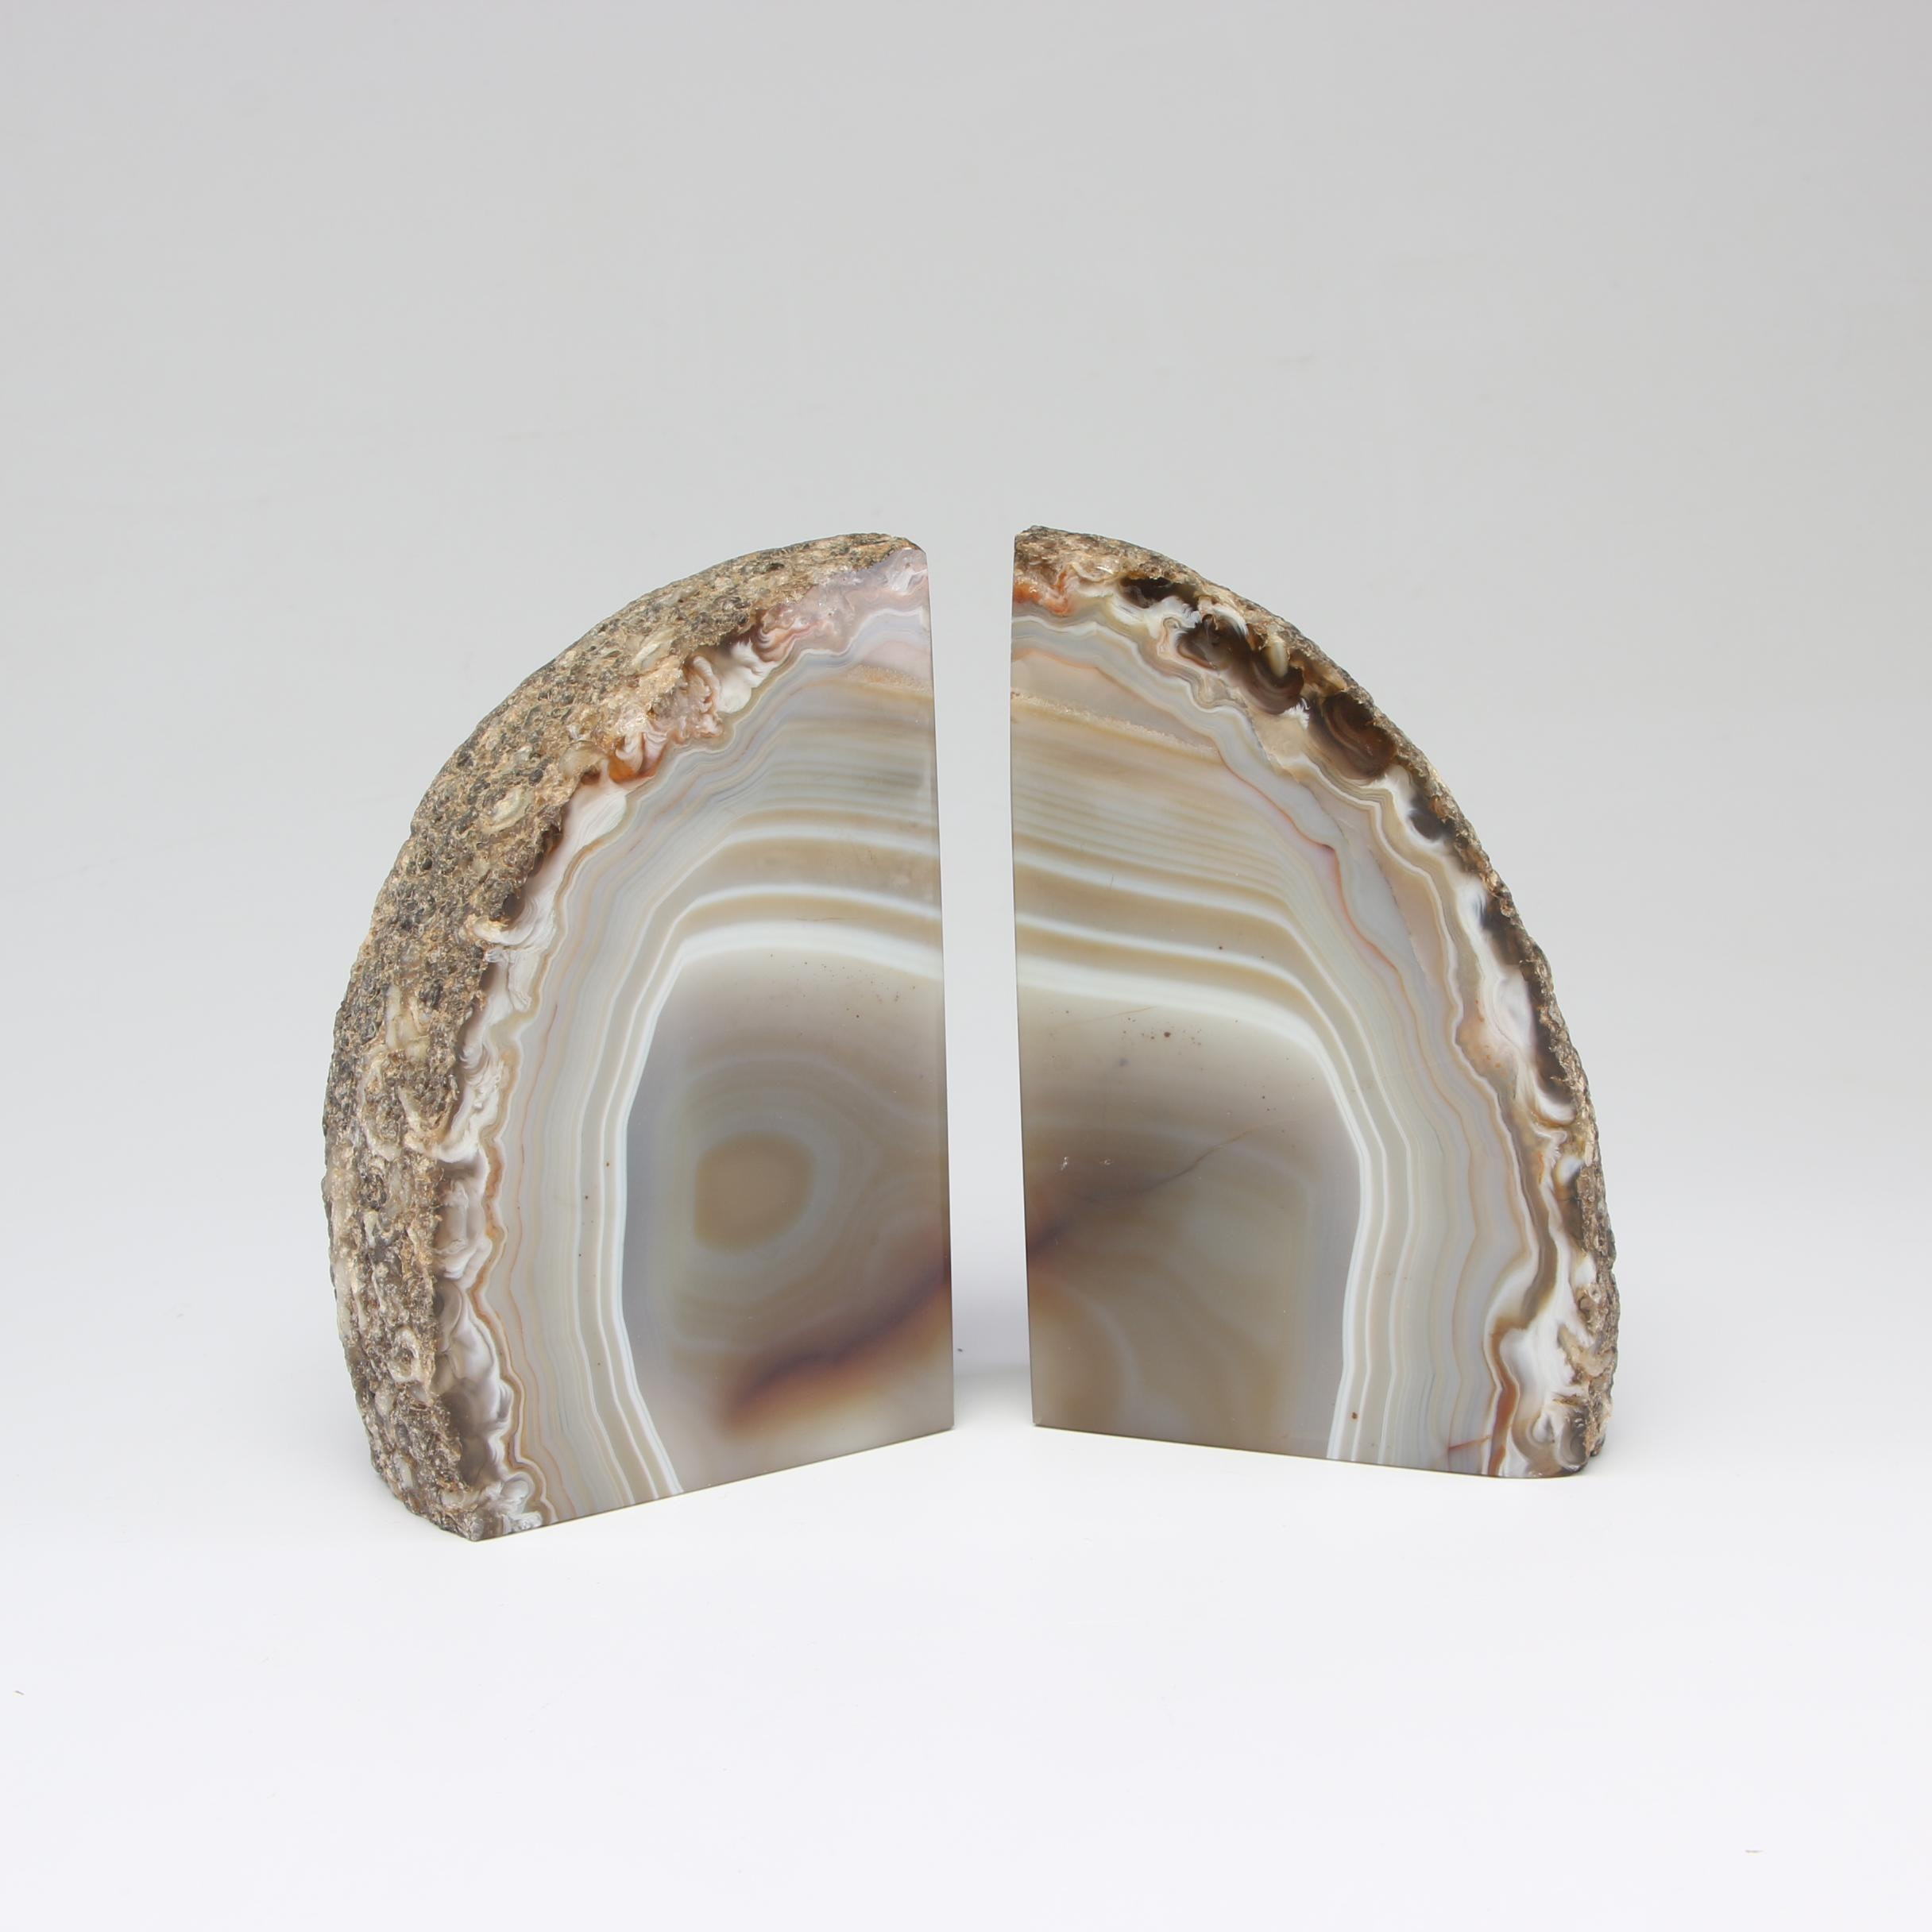 Sliced Agate Bookends